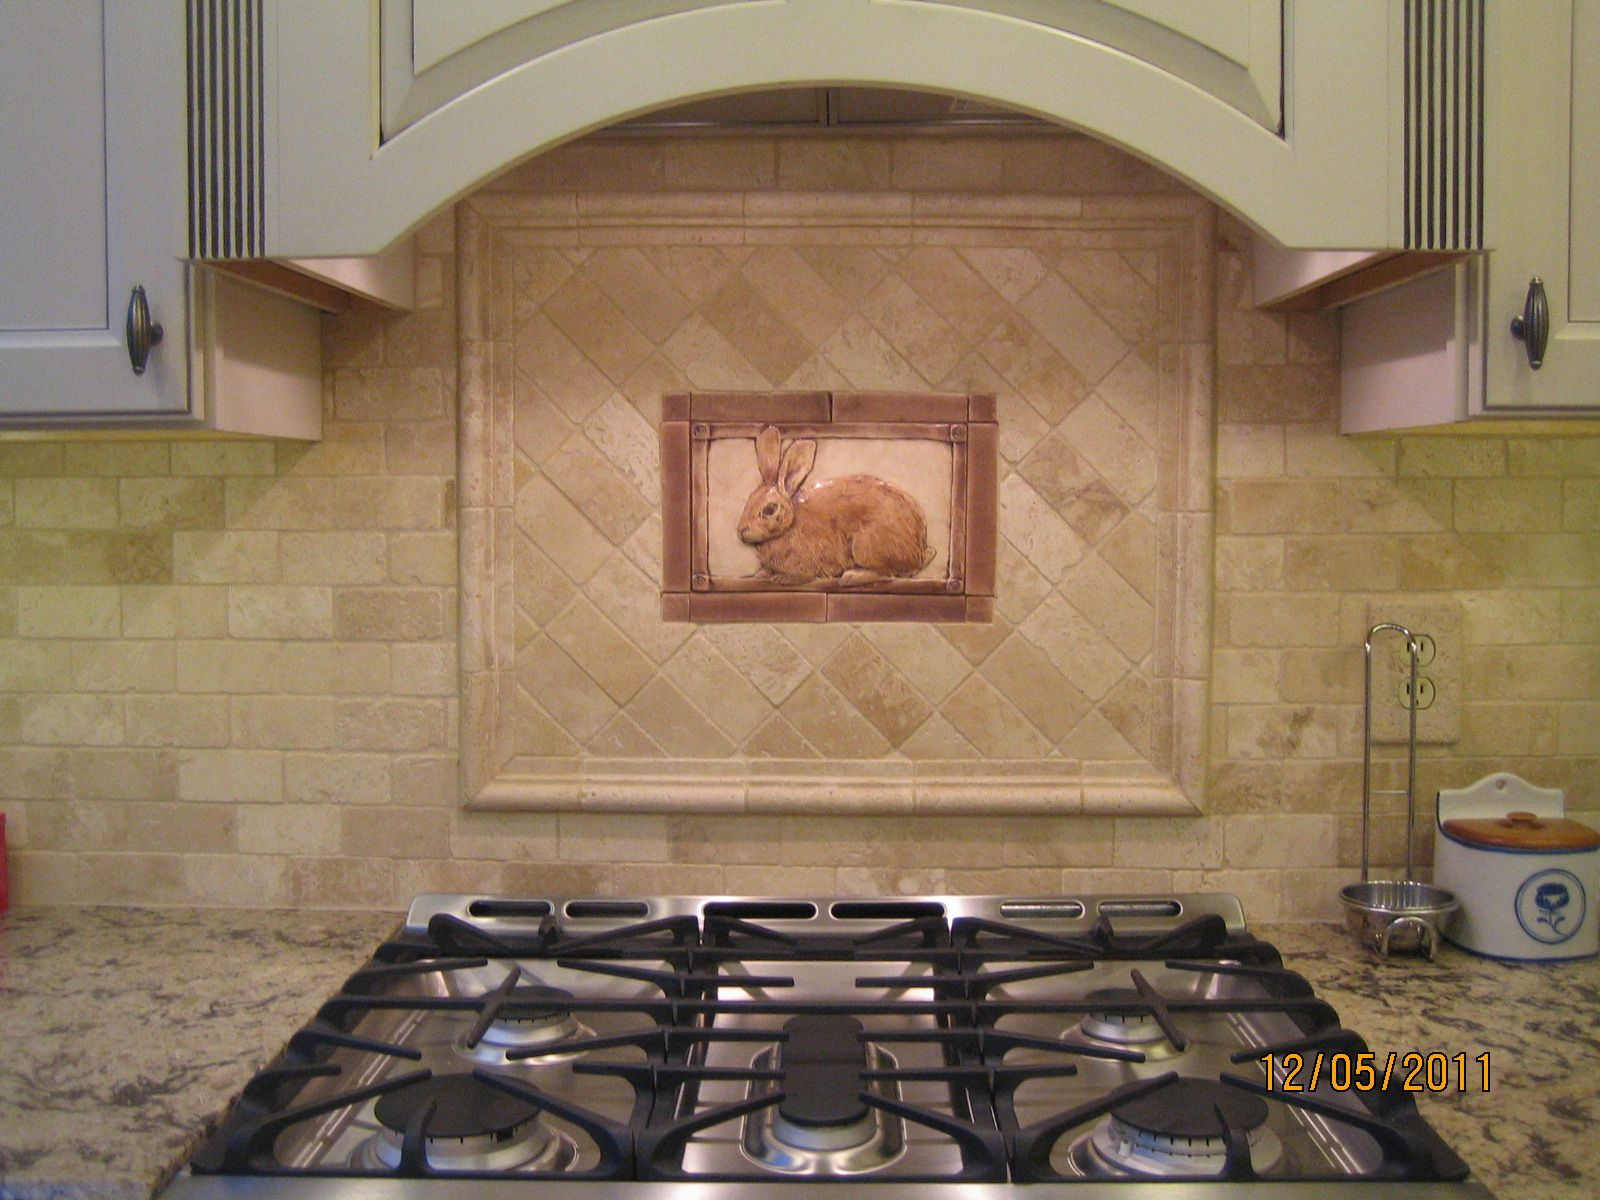 Kitchen Tiled Backsplash With Handcrafted Rabbit Tile As